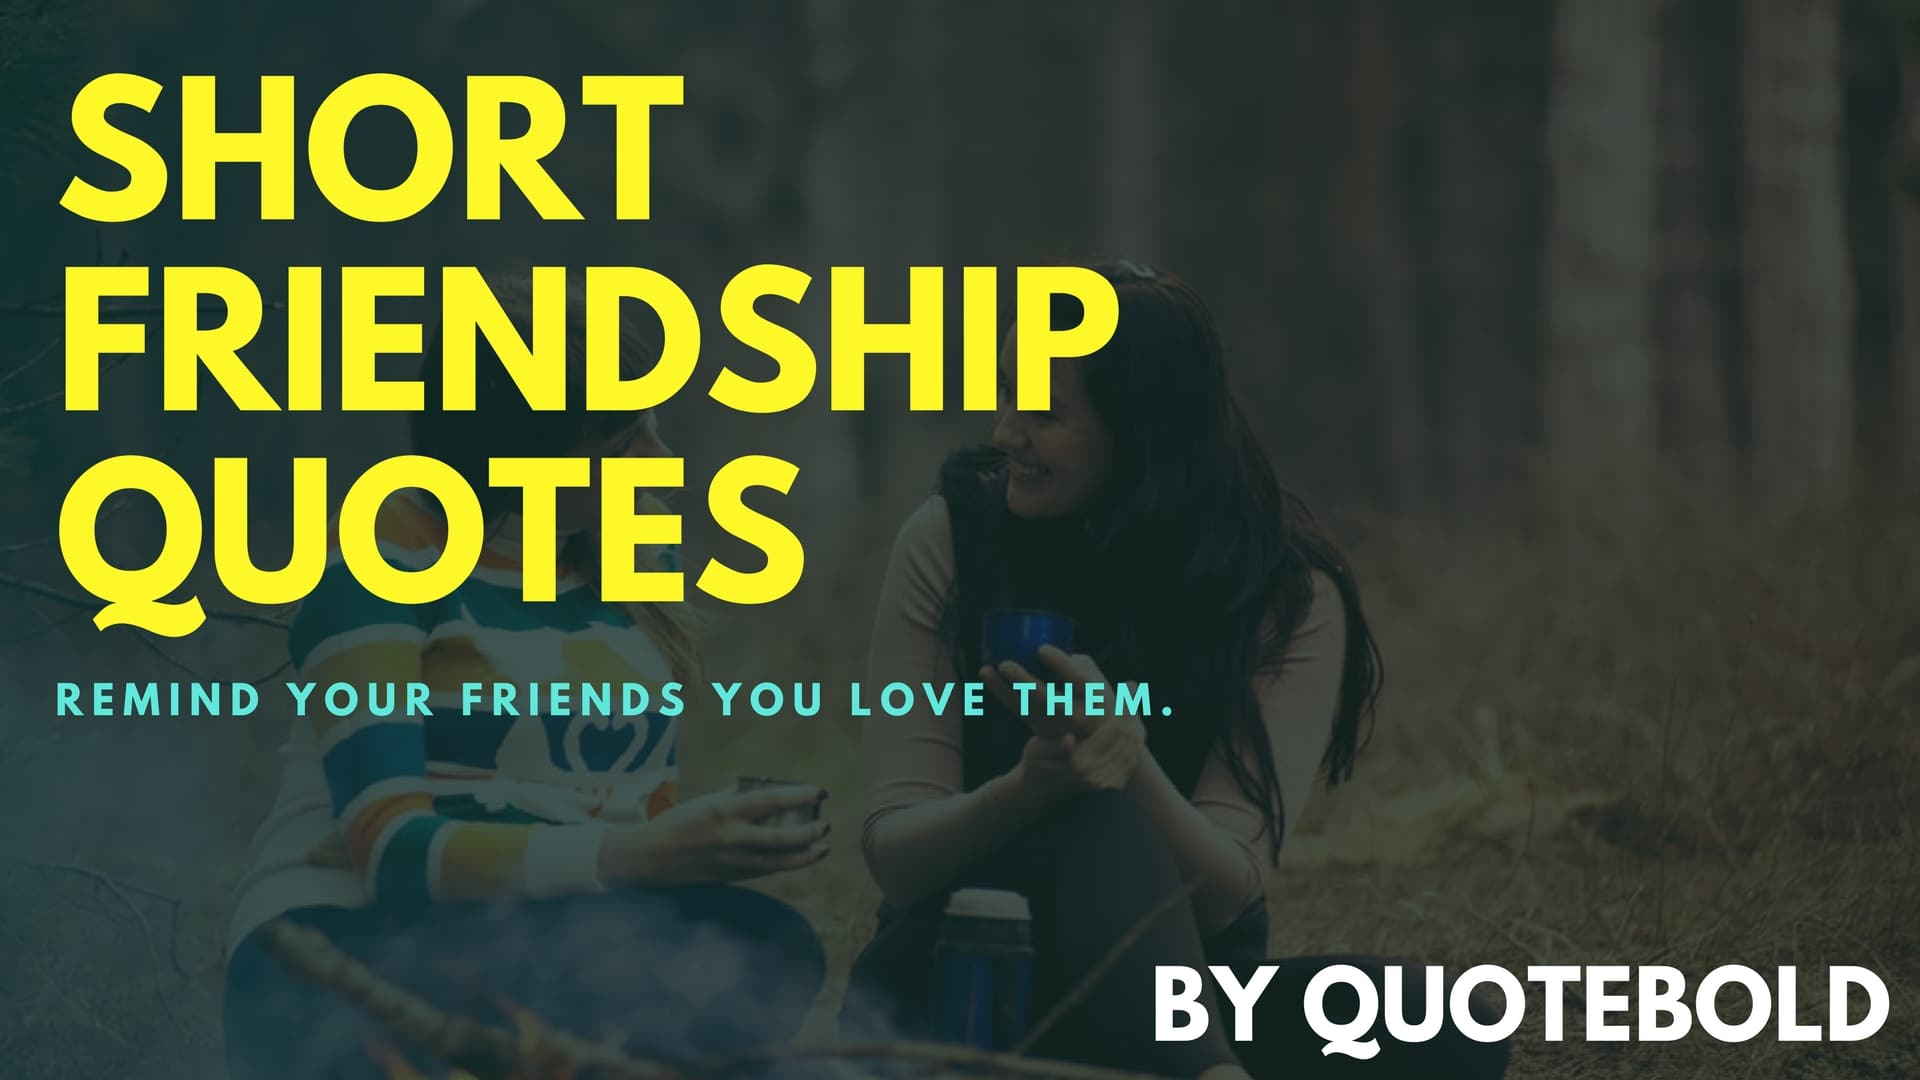 Short Friendship Quotes Image